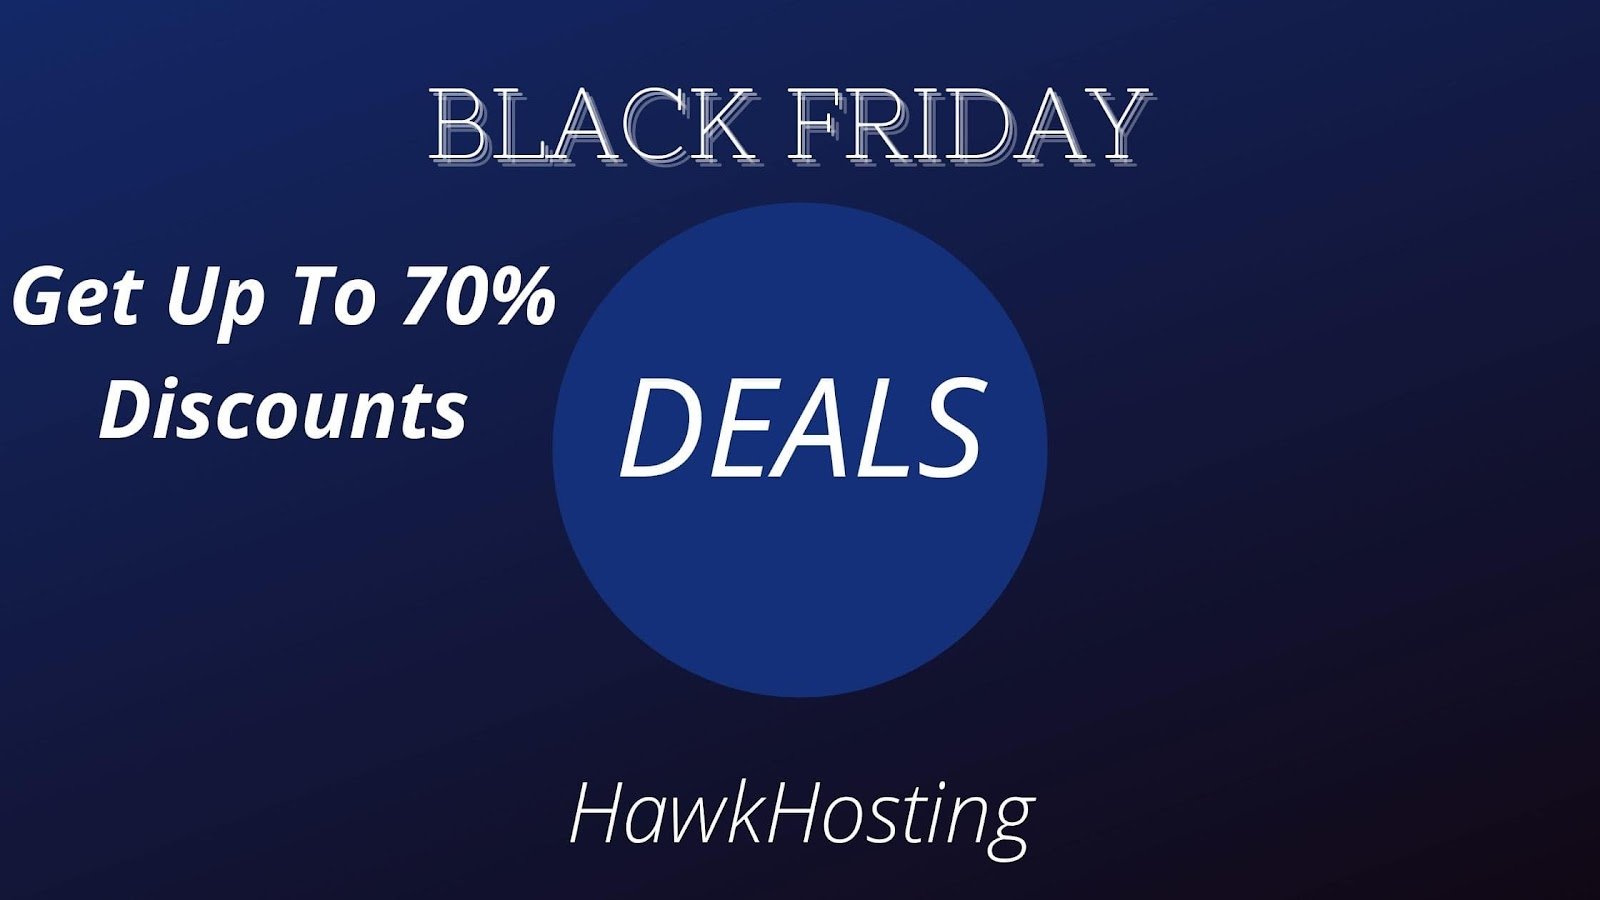 HawkHost -Get Up To 70% Off